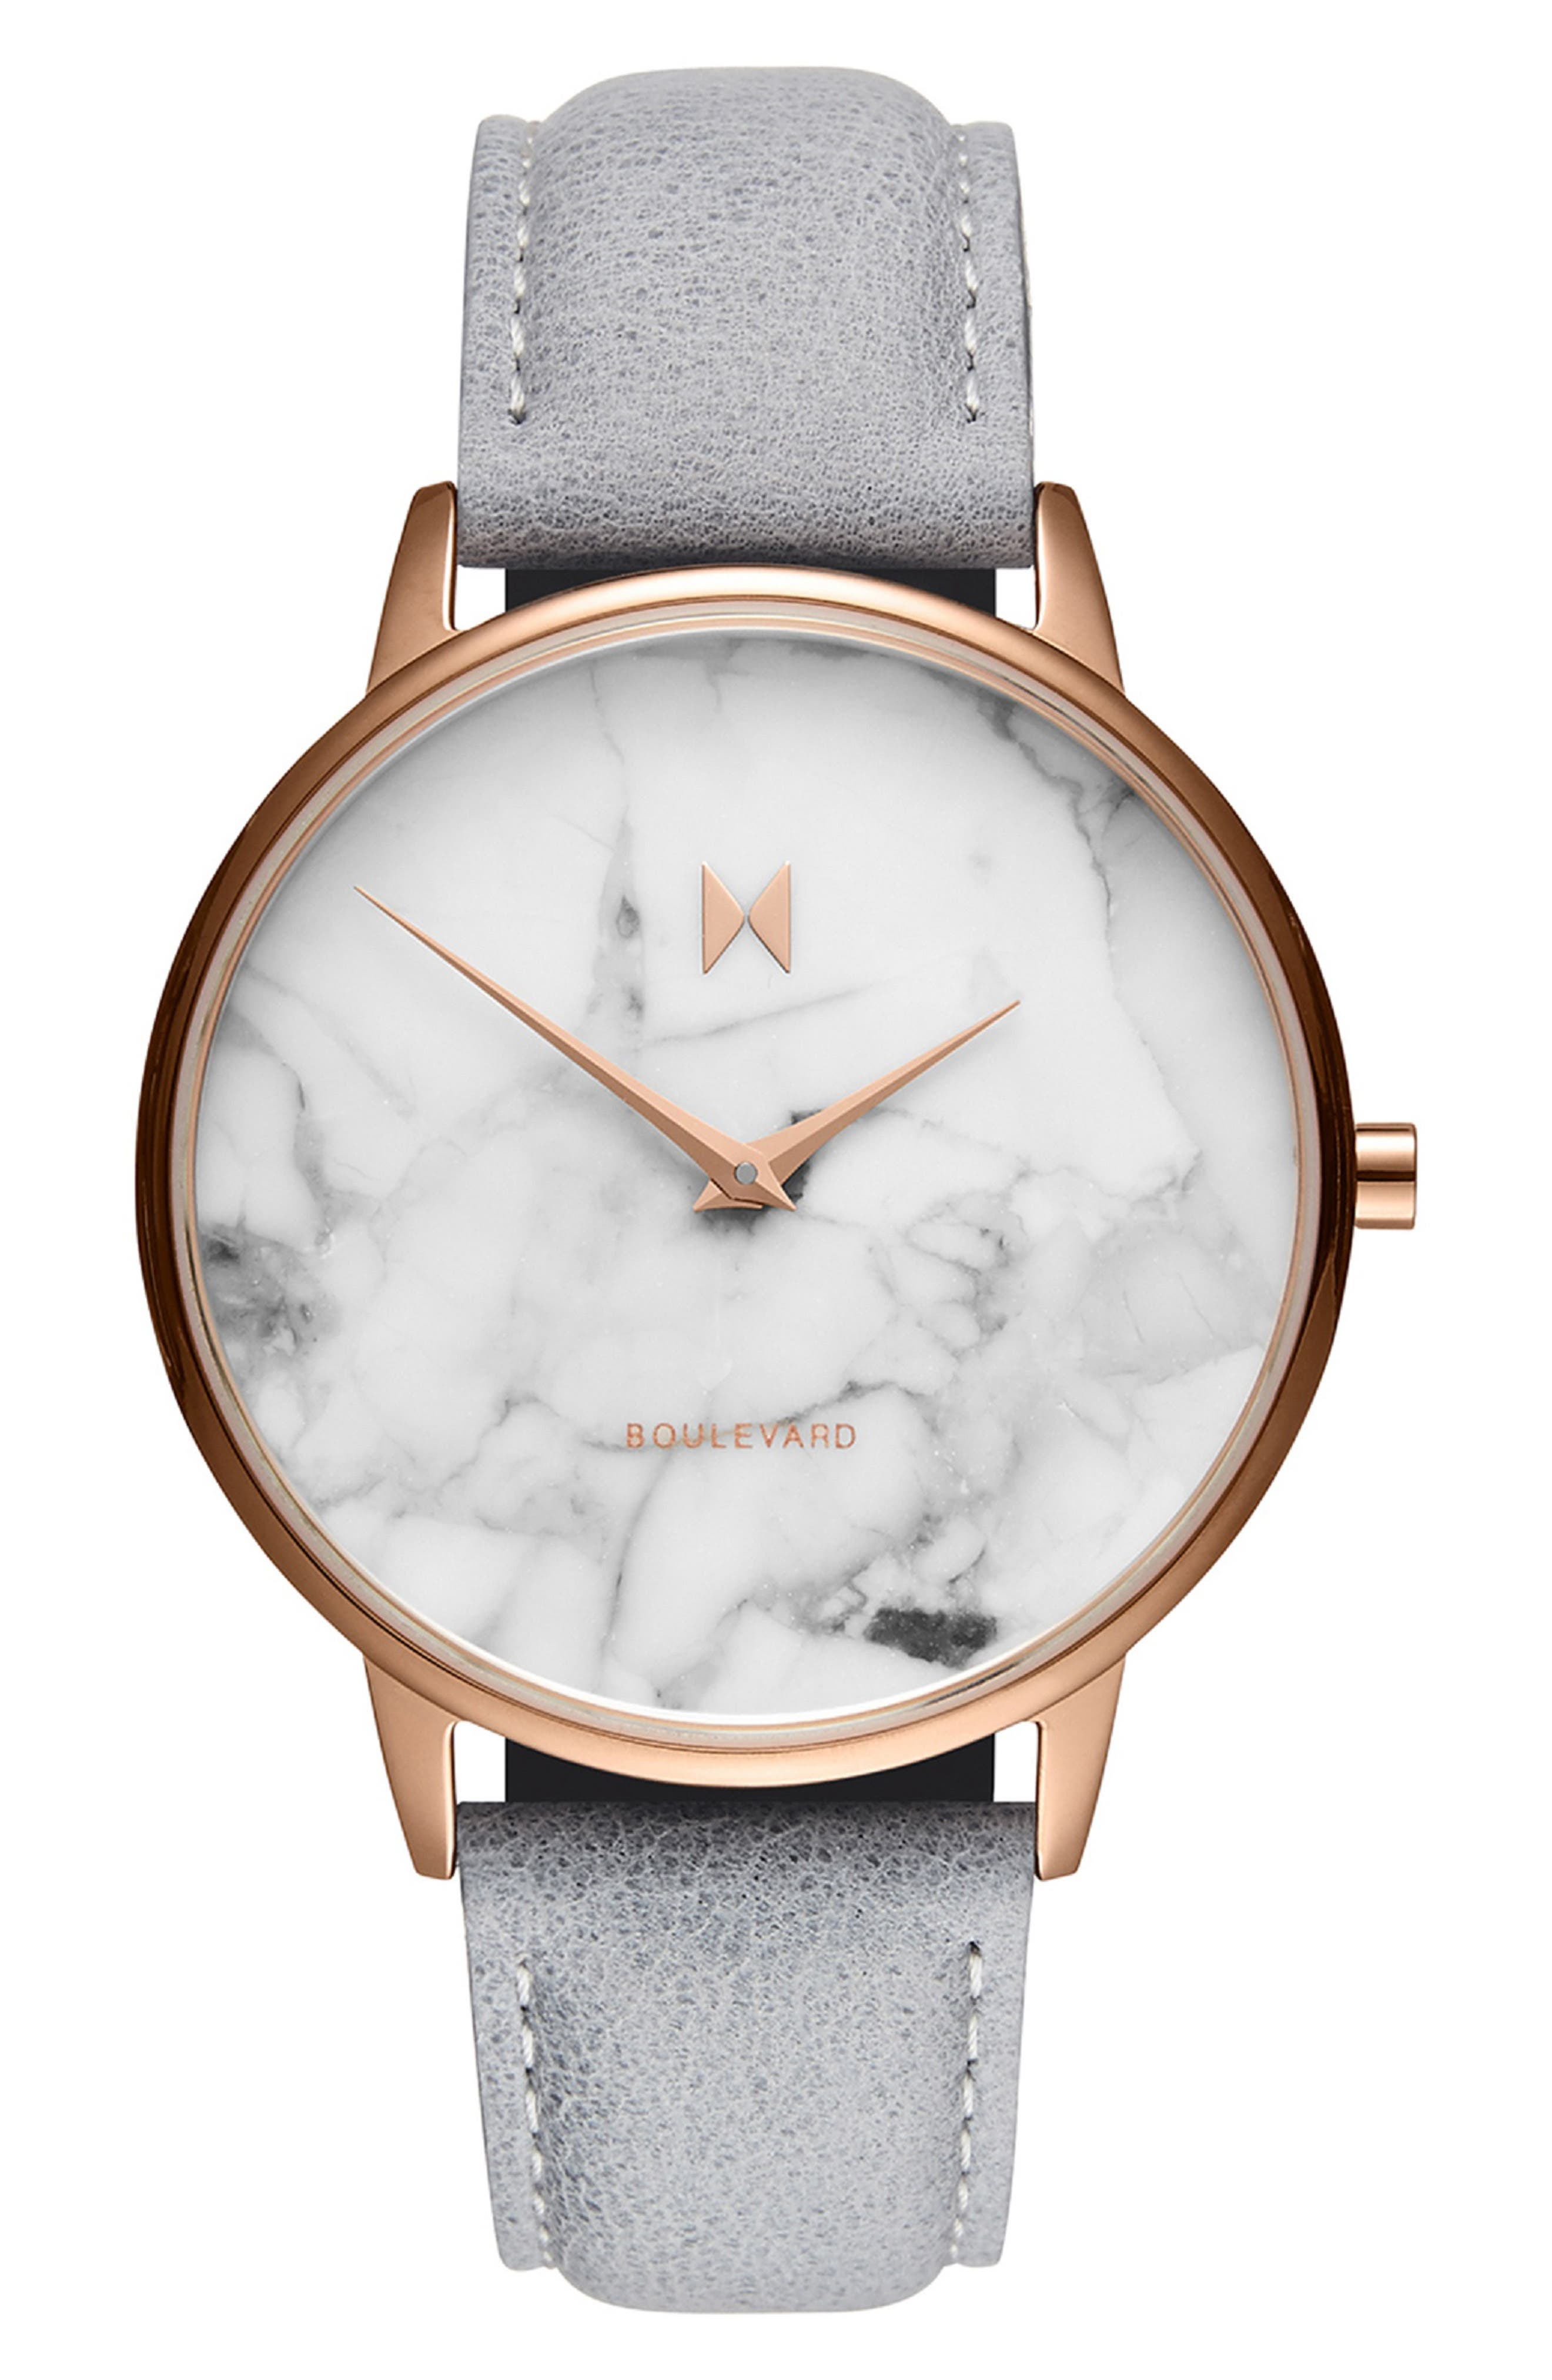 Boulevard Leather Strap Watch, 38mm,                         Main,                         color, GREY/ WHITE MARBLE/ ROSE GOLD